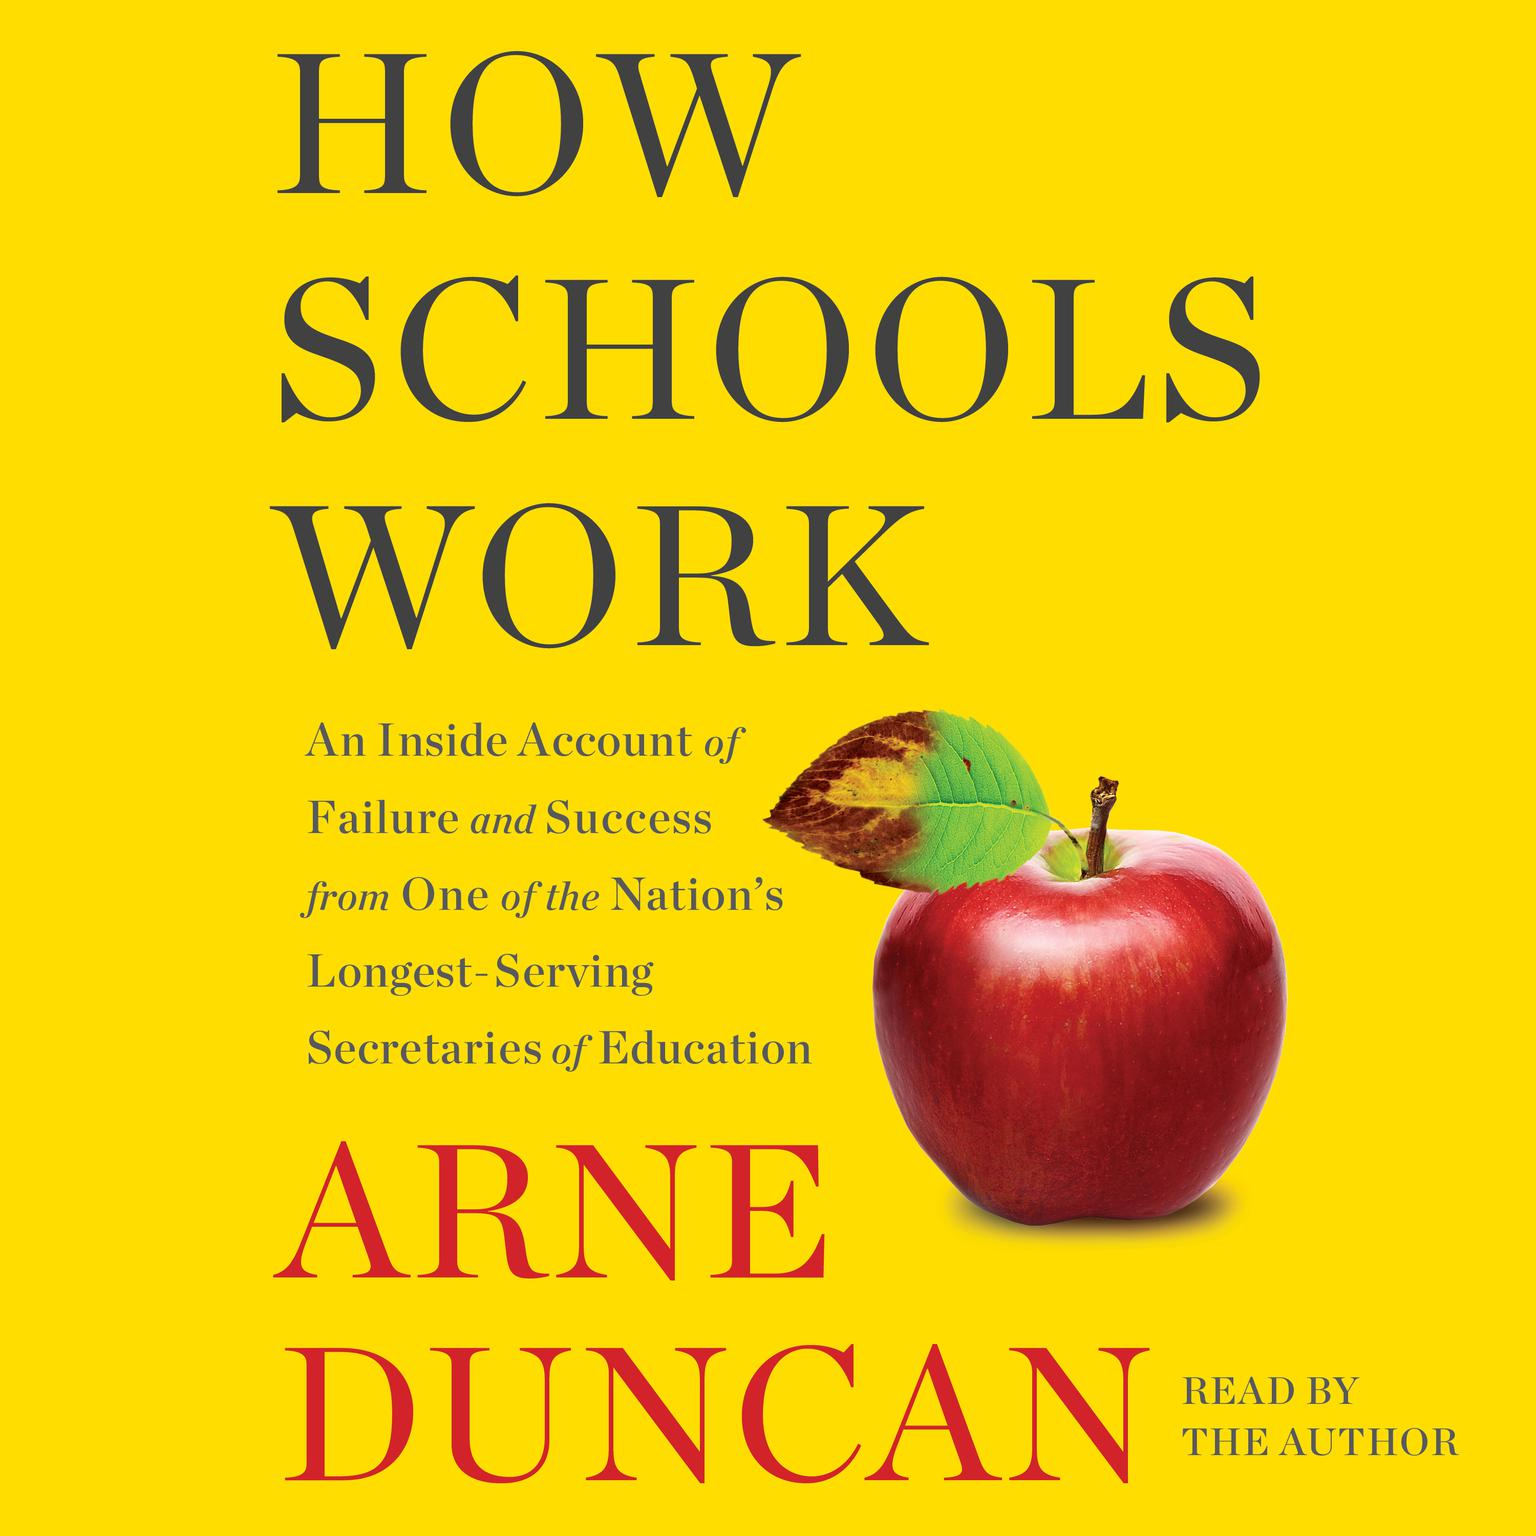 Printable How Schools Work: An Inside Account of Failure and Success from One of the Nation's Longest-Serving Secretaries of Education Audiobook Cover Art